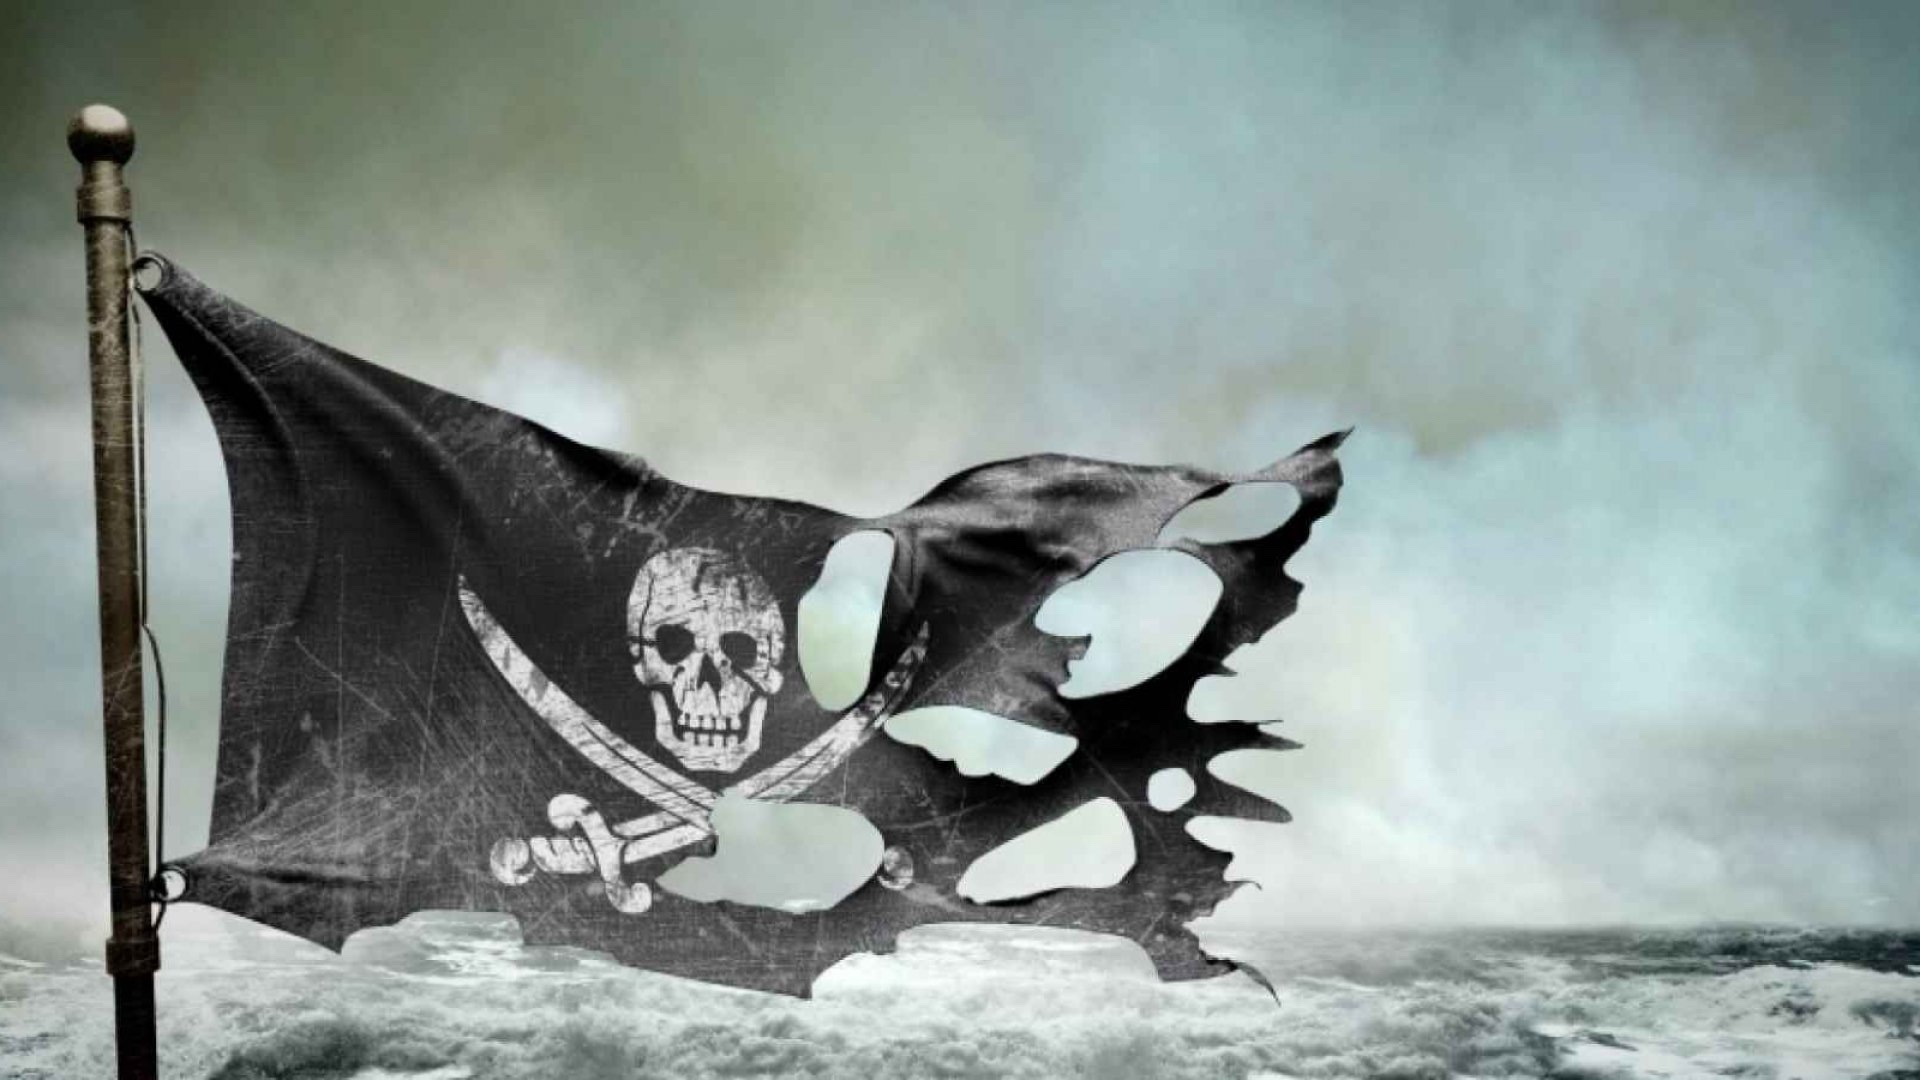 September 19th: Ahoy, maties! It's Talk Like A Pirate Day!